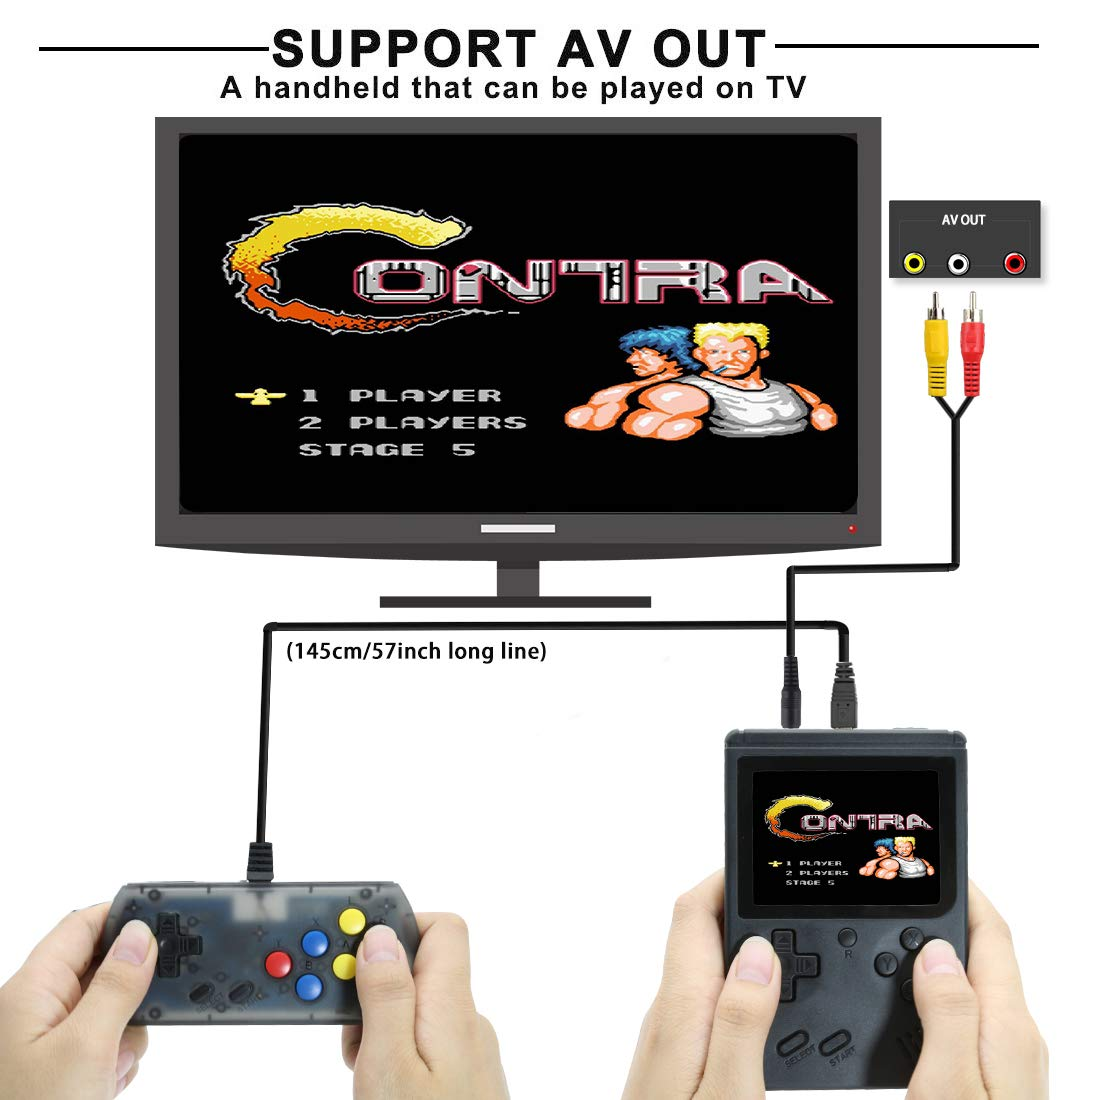 AKTOUGST Retro Handheld Game Console FC System 168 Classic Game Portable Video Game 3 Inch 2 Player Plus Extra Joystick Game Console Support on TV,Presend for Kid Adult, (Black) by AKTOUGST (Image #3)